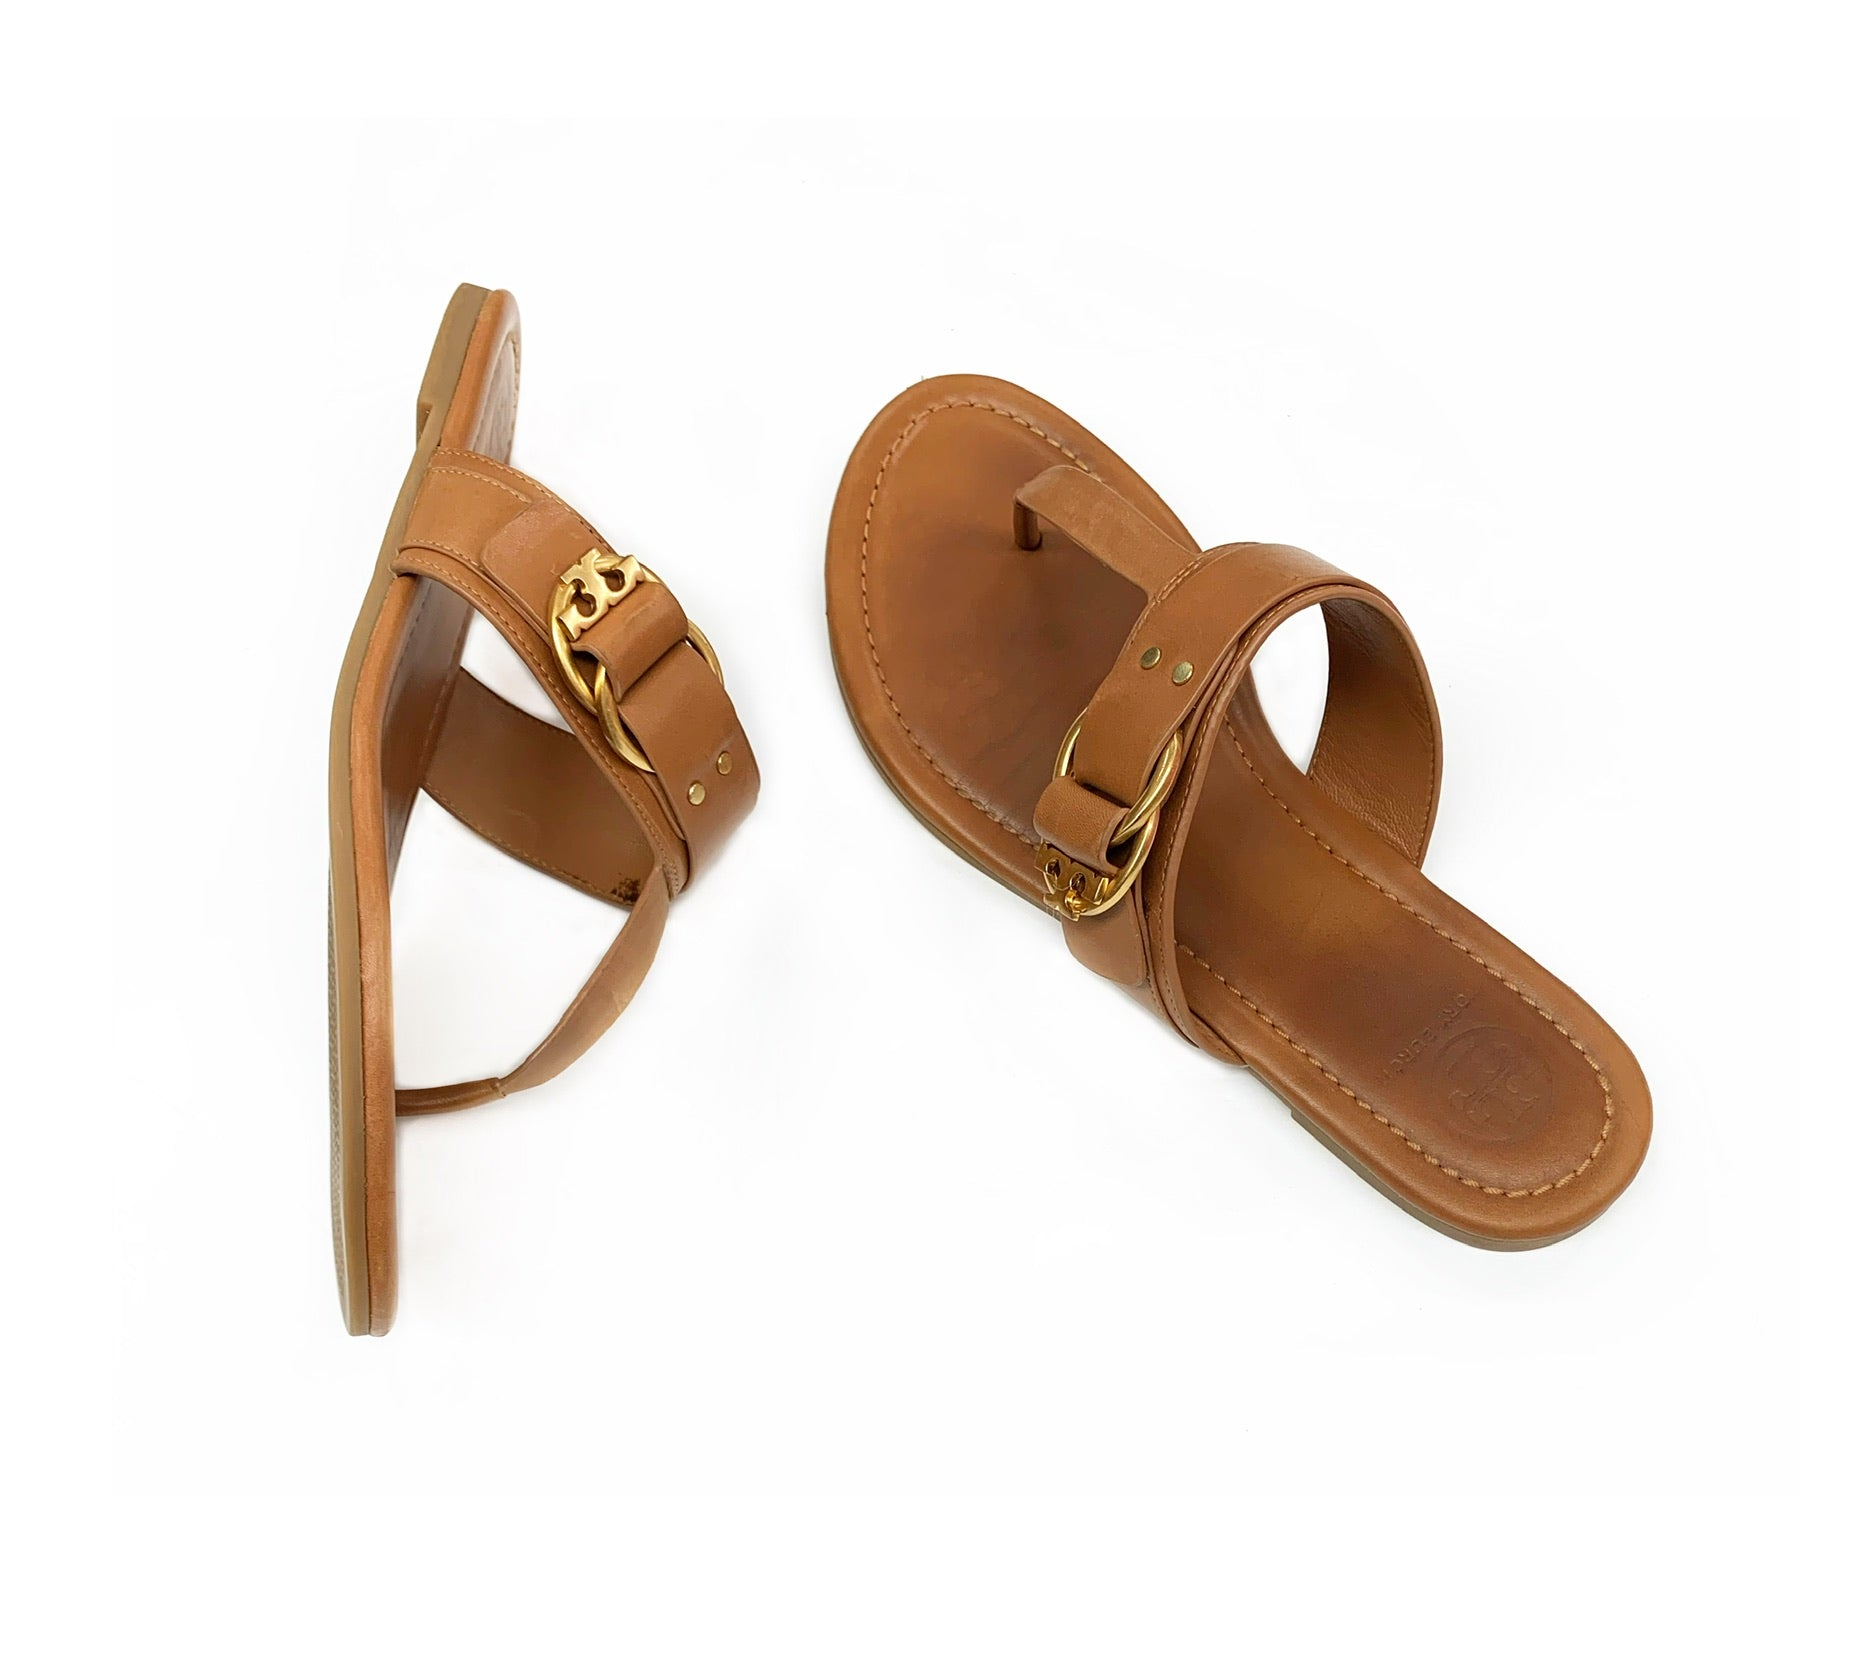 Primary Photo - BRAND: TORY BURCH<BR>STYLE: SHOES DESIGNER<BR>COLOR: CAMEL<BR>SIZE: 7.5<BR>SKU: 196-19681-66093